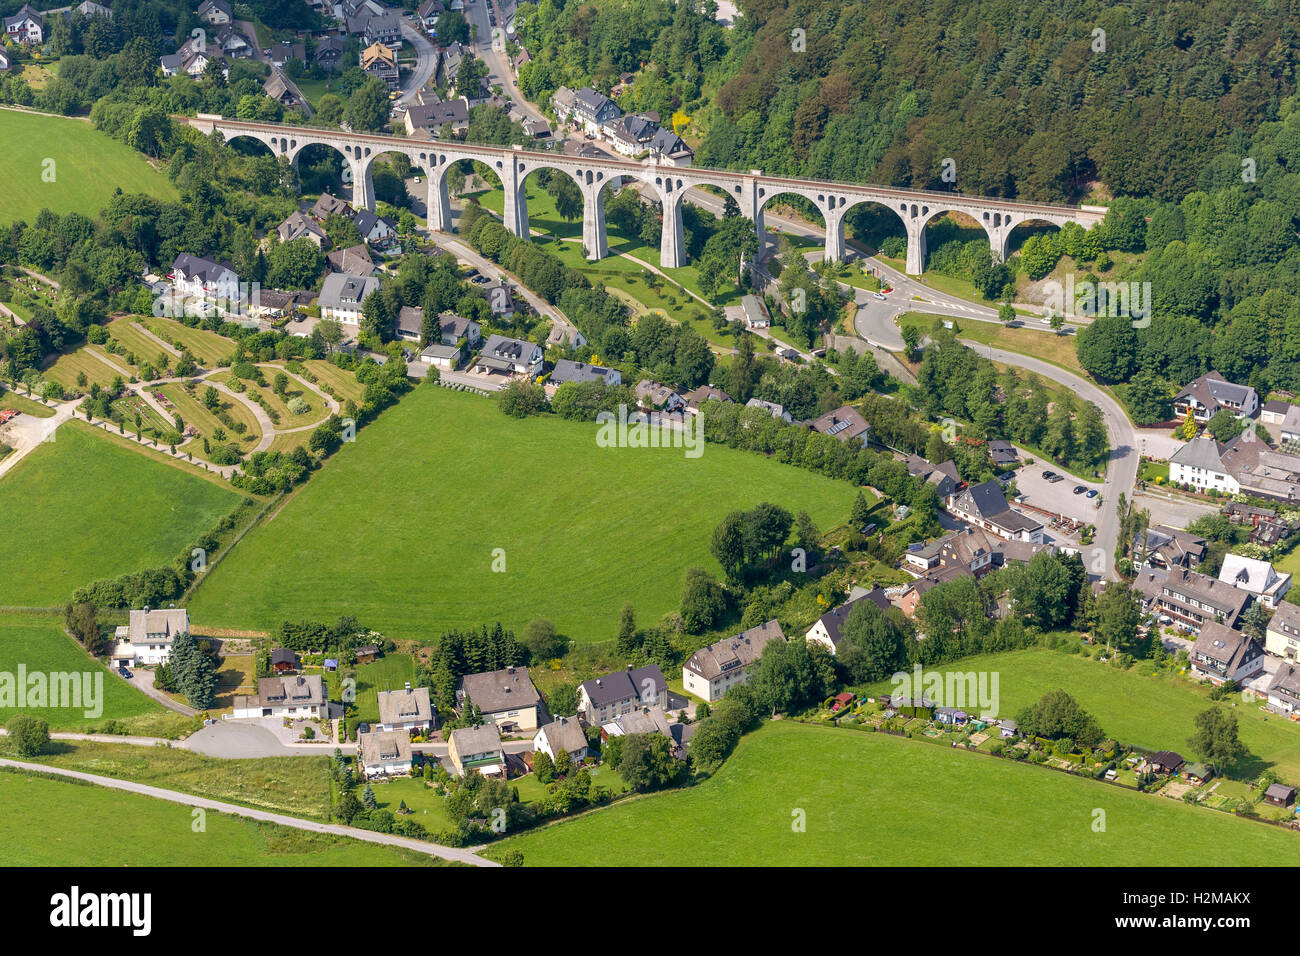 Aerial view, viaduct Willingen, Willingen (Upland), Hochsauerland region, Willingen, Lake Diemelsee, Hessen, Germany, - Stock Image